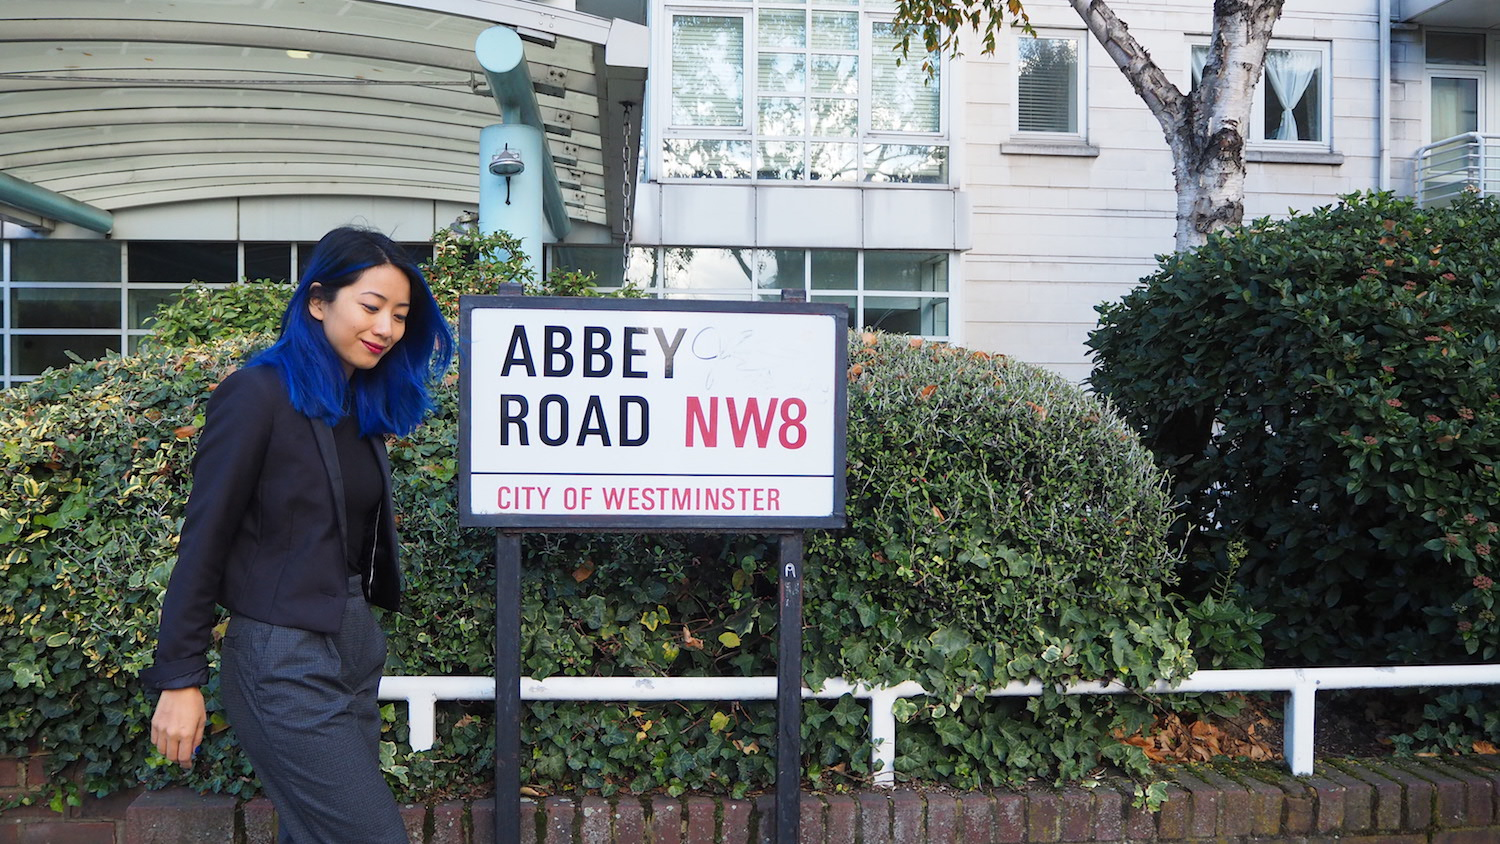 Abbey-Road-street-sign-NW8-city-of-Westminister-The-Wong-Janice-London-music-producer-cellist.JPG